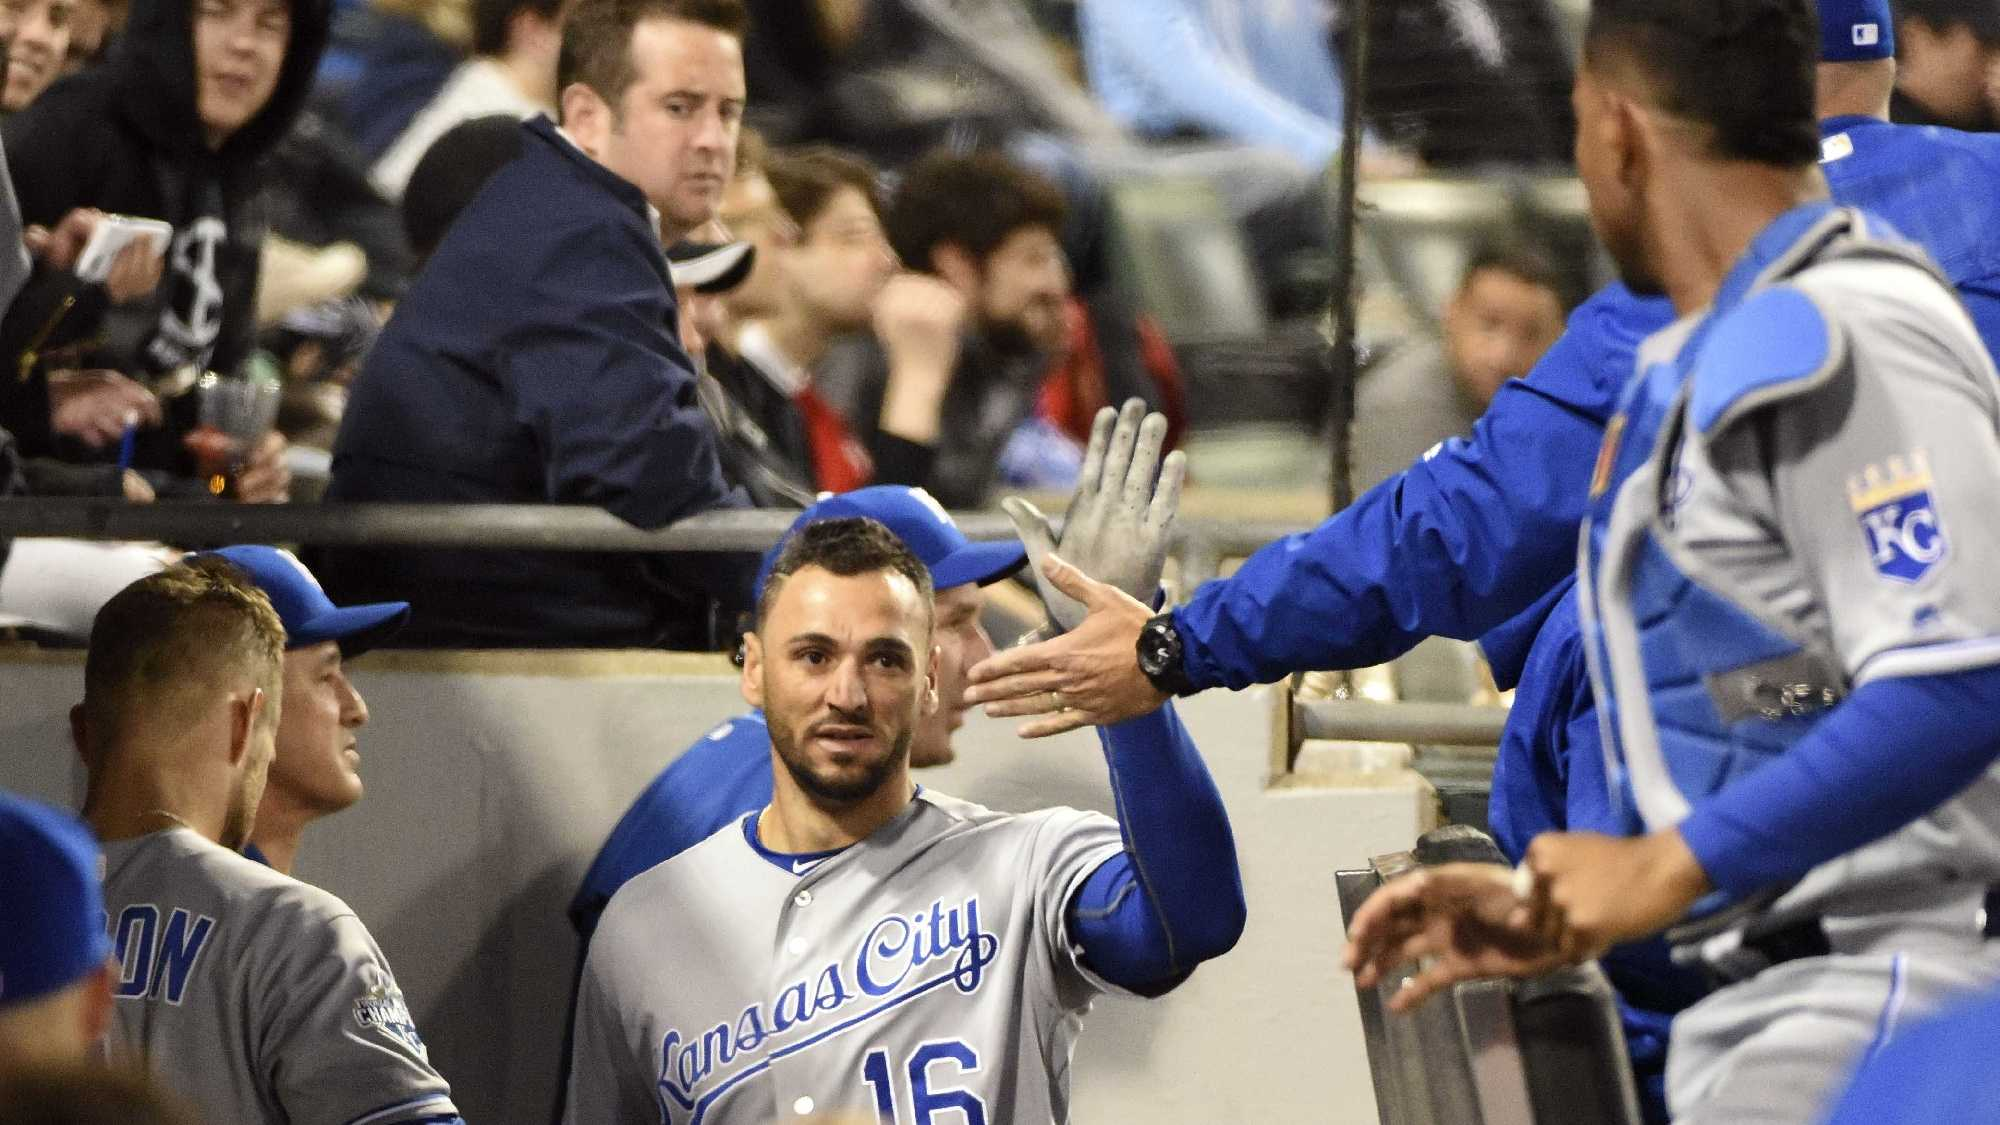 Kansas City Royals' Paulo Orlando (16) is greeted by his teammates after scoring against the Chicago White Sox during the sixth inning of a baseball game, Friday, May 20, 2016, in Chicago. (AP Photo/David Banks)